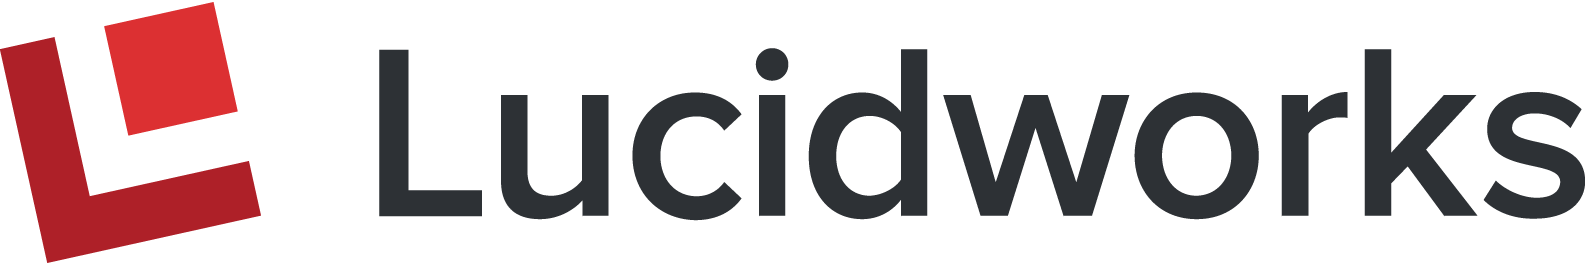 Lucidworks Search and Discovery logo